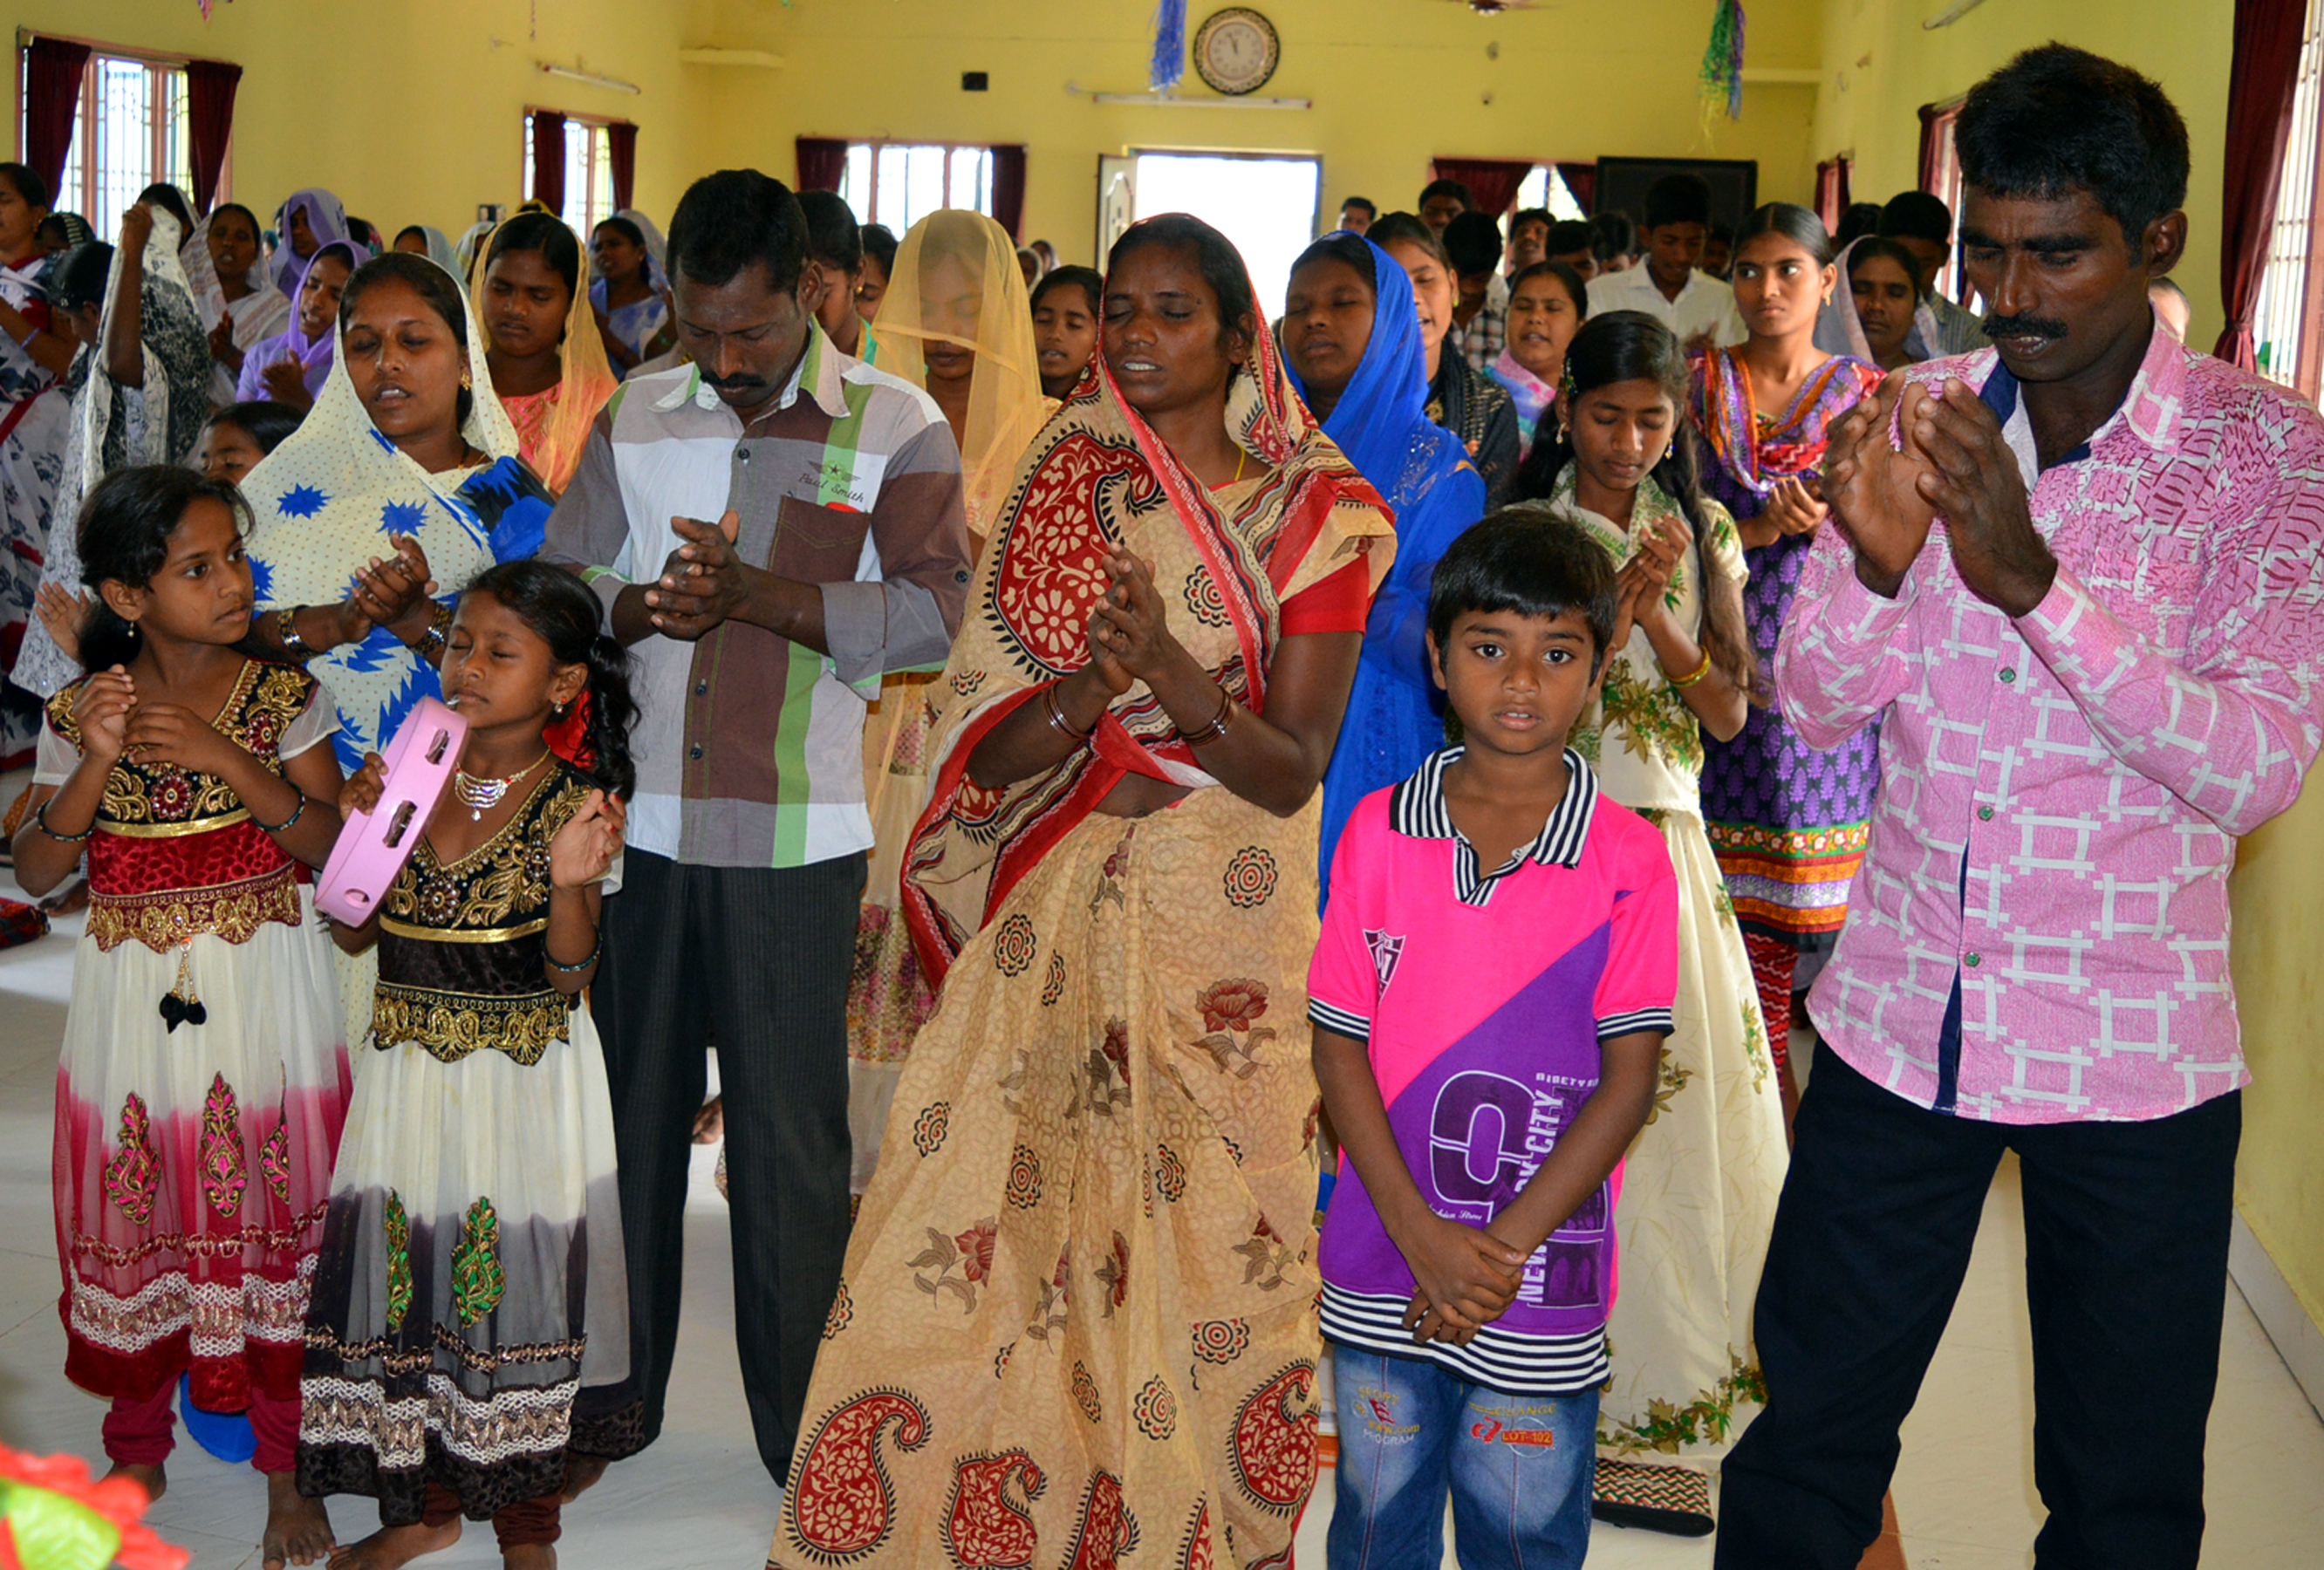 Fire victims in India are rejoicing